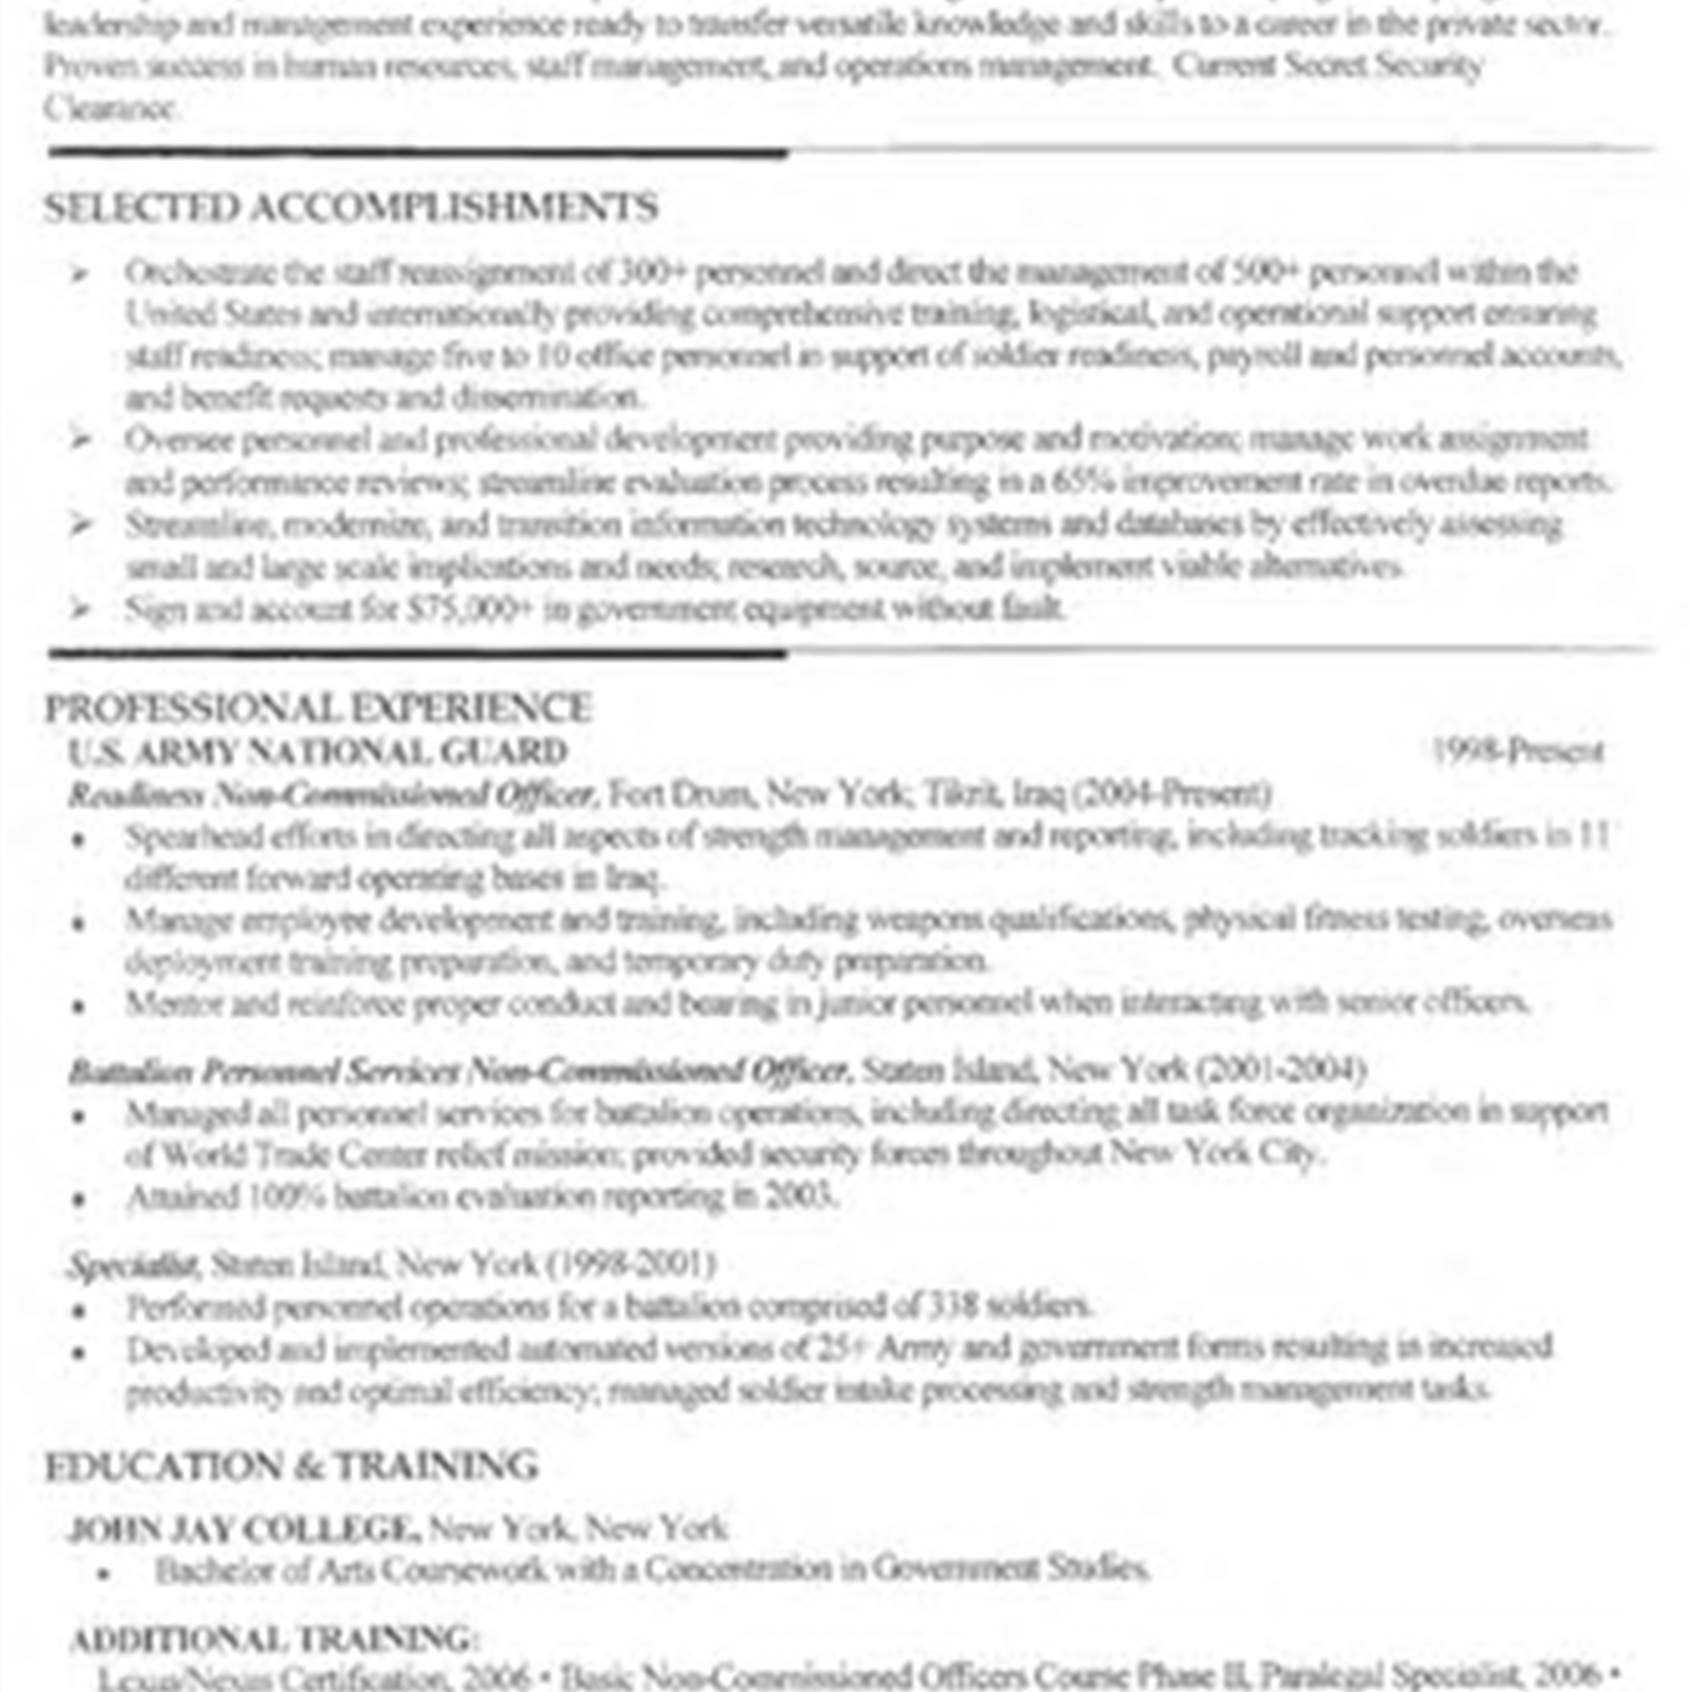 Resume and Cover Letter Writers - Professional Resume and Cover Letter Writing Services List Resume